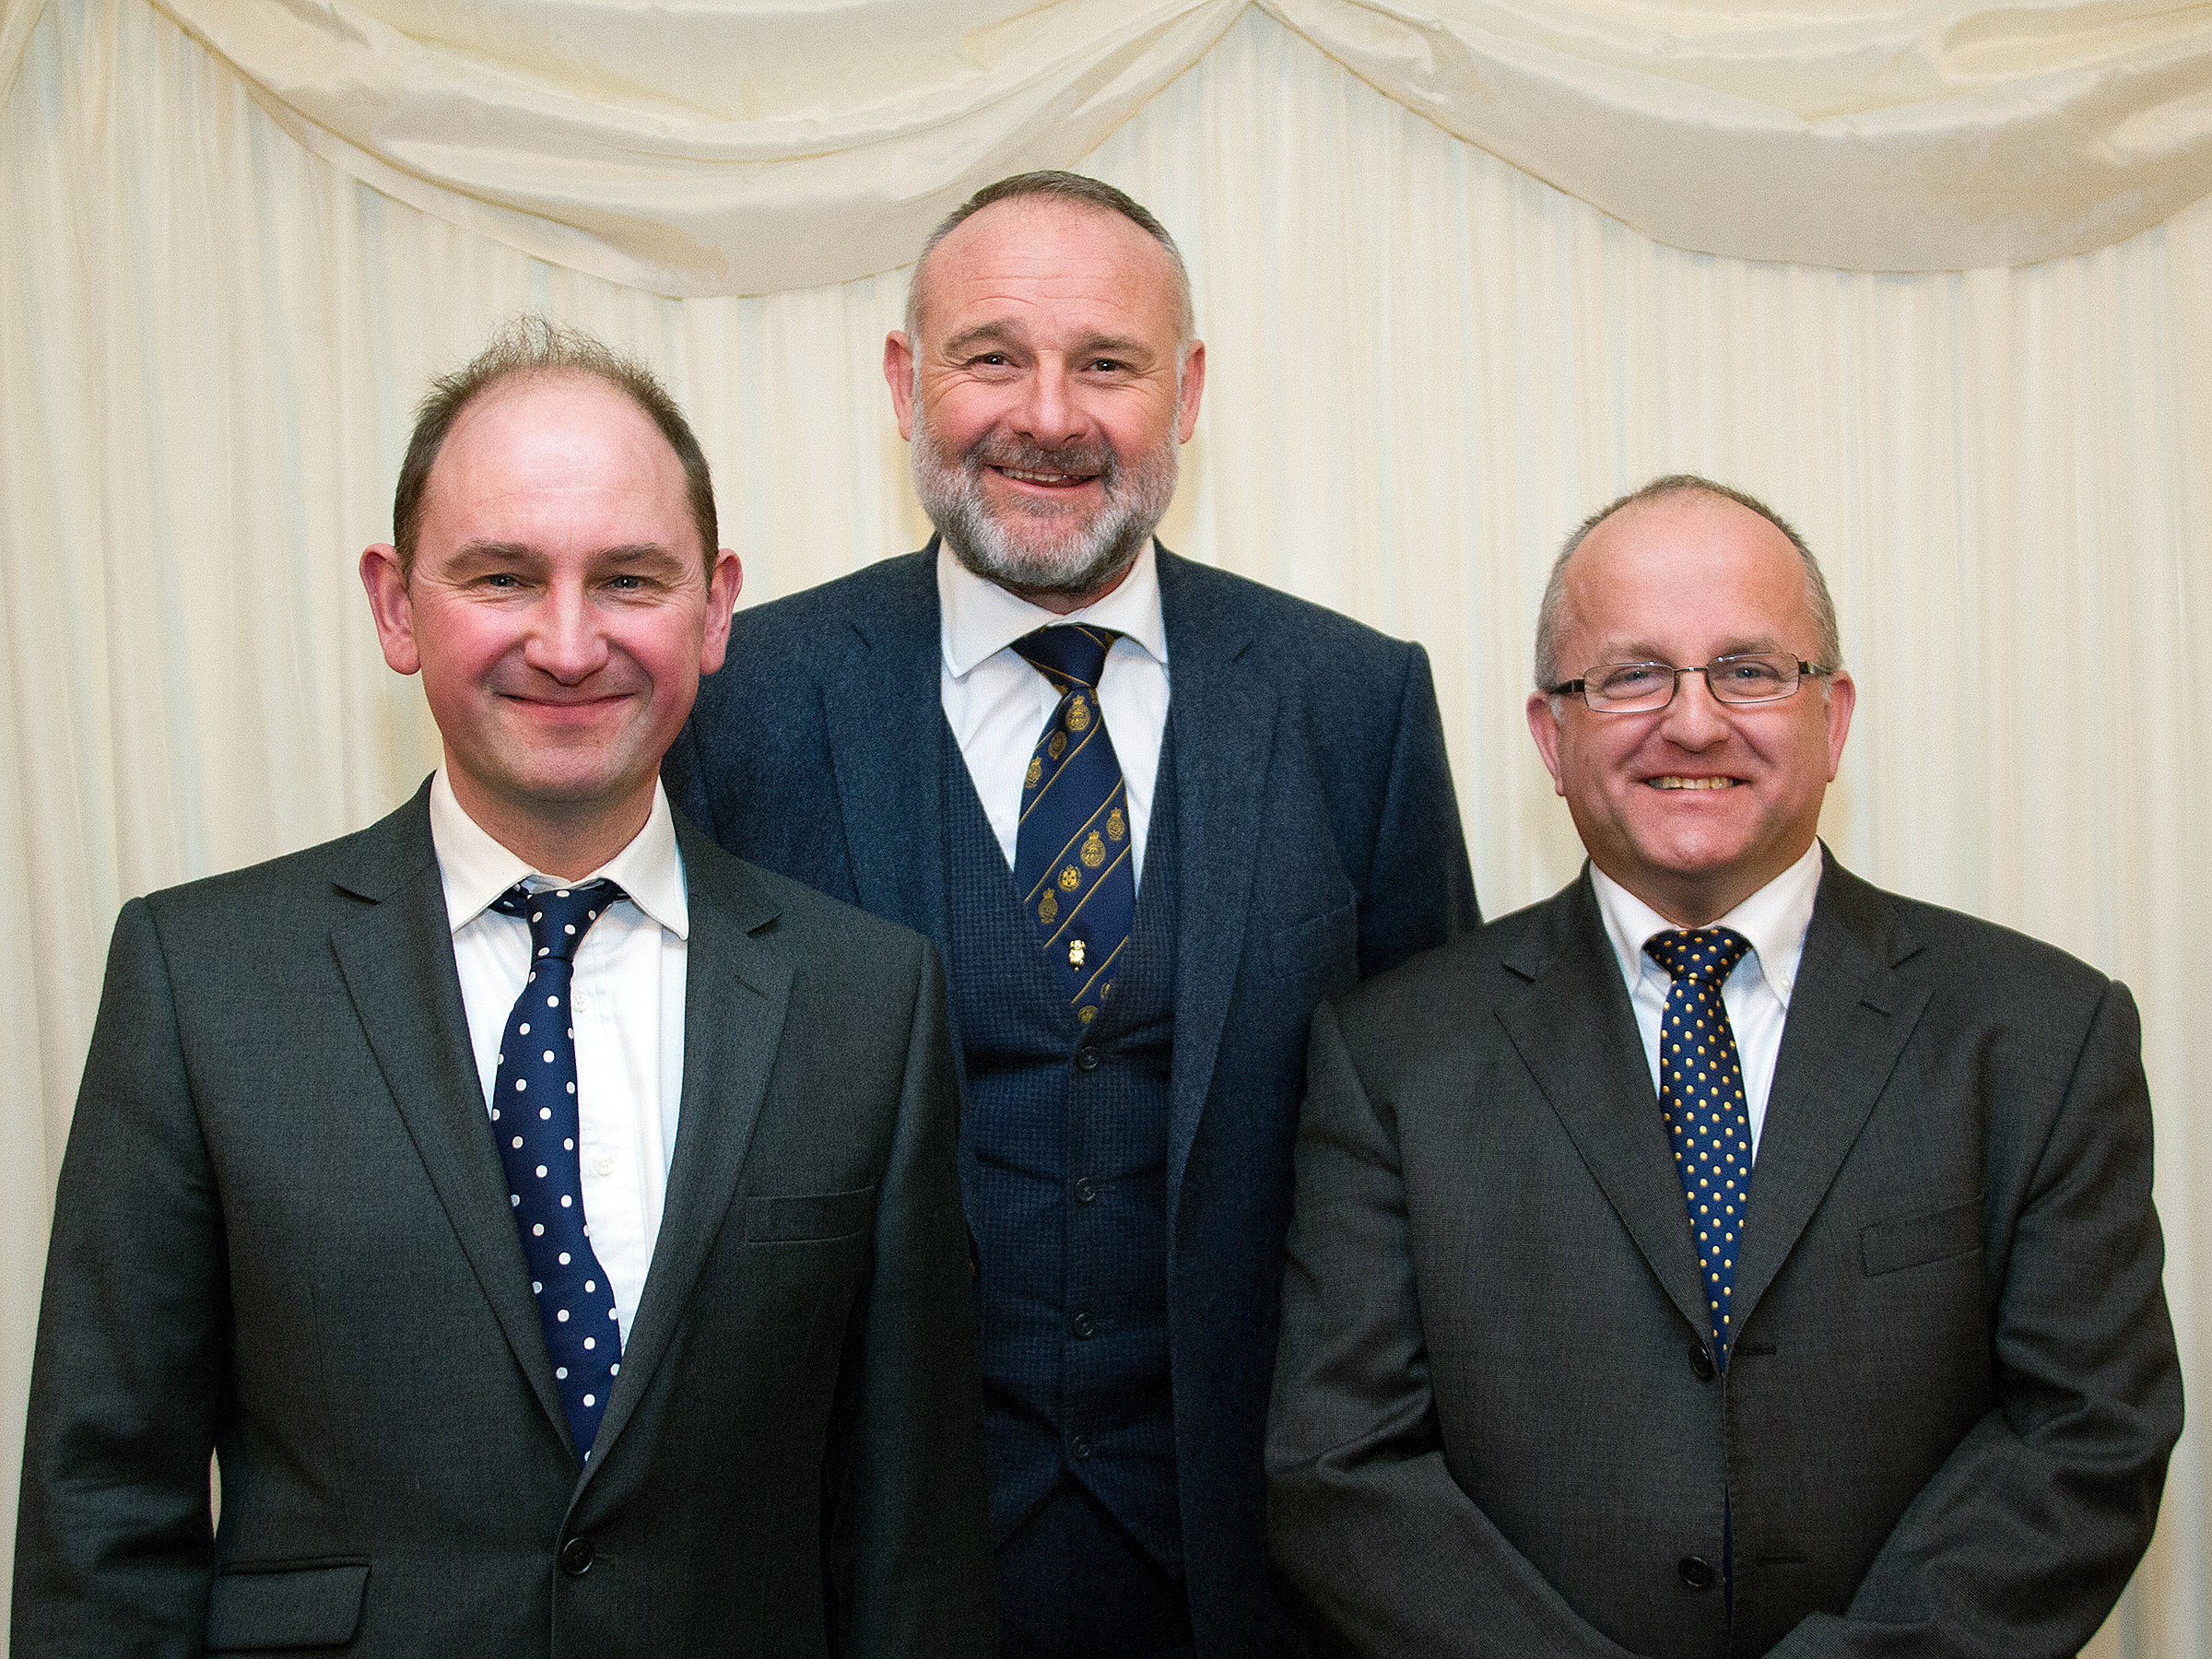 Left to right: Matthew Naylor, Sean Sparling and Alan Robson at the House of Lords on the 10th February